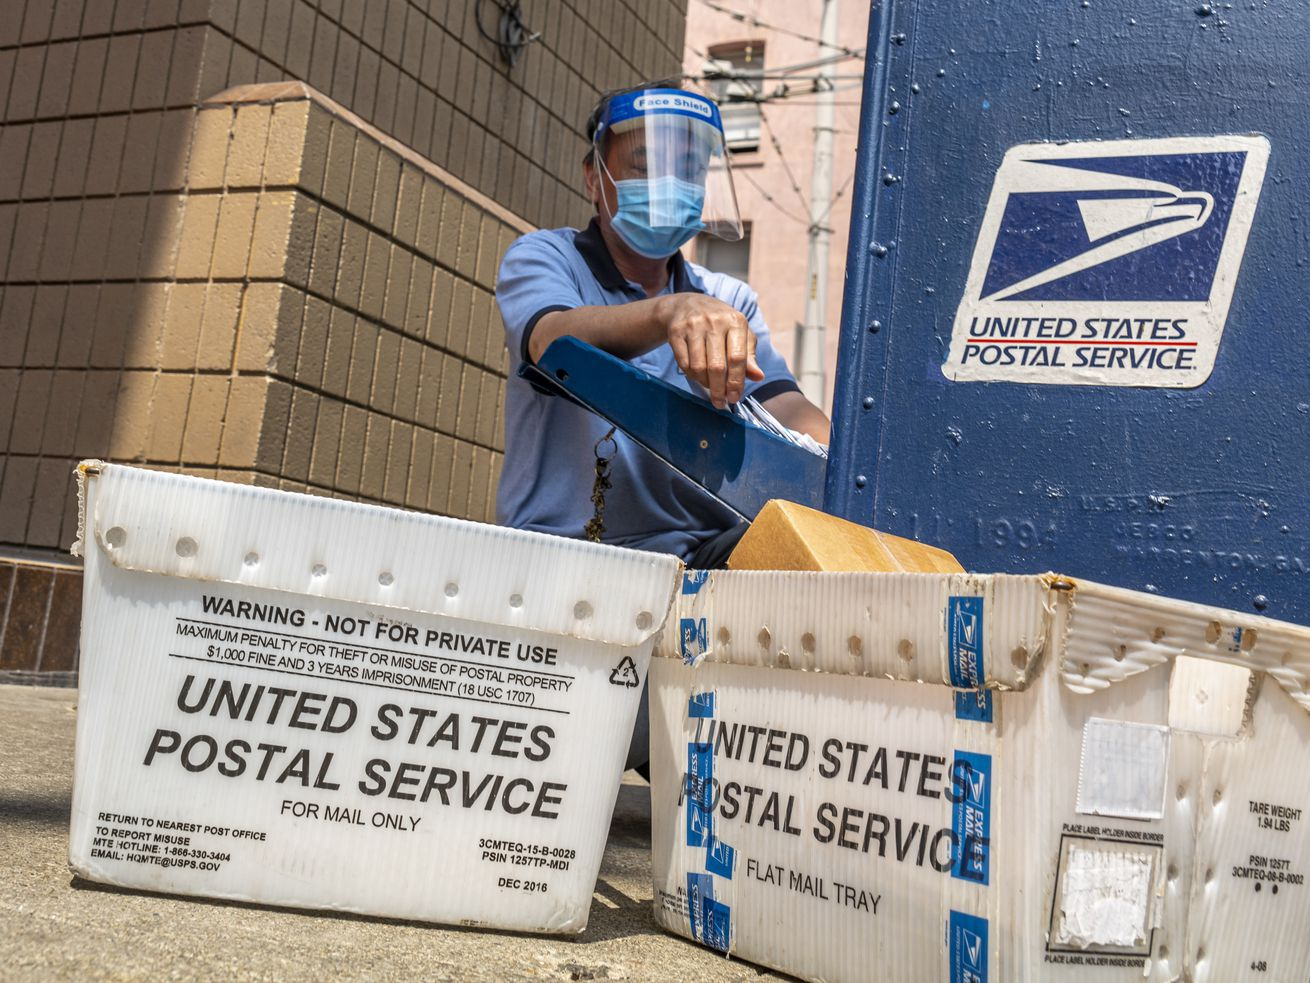 A postal worker empties a blue collection box.